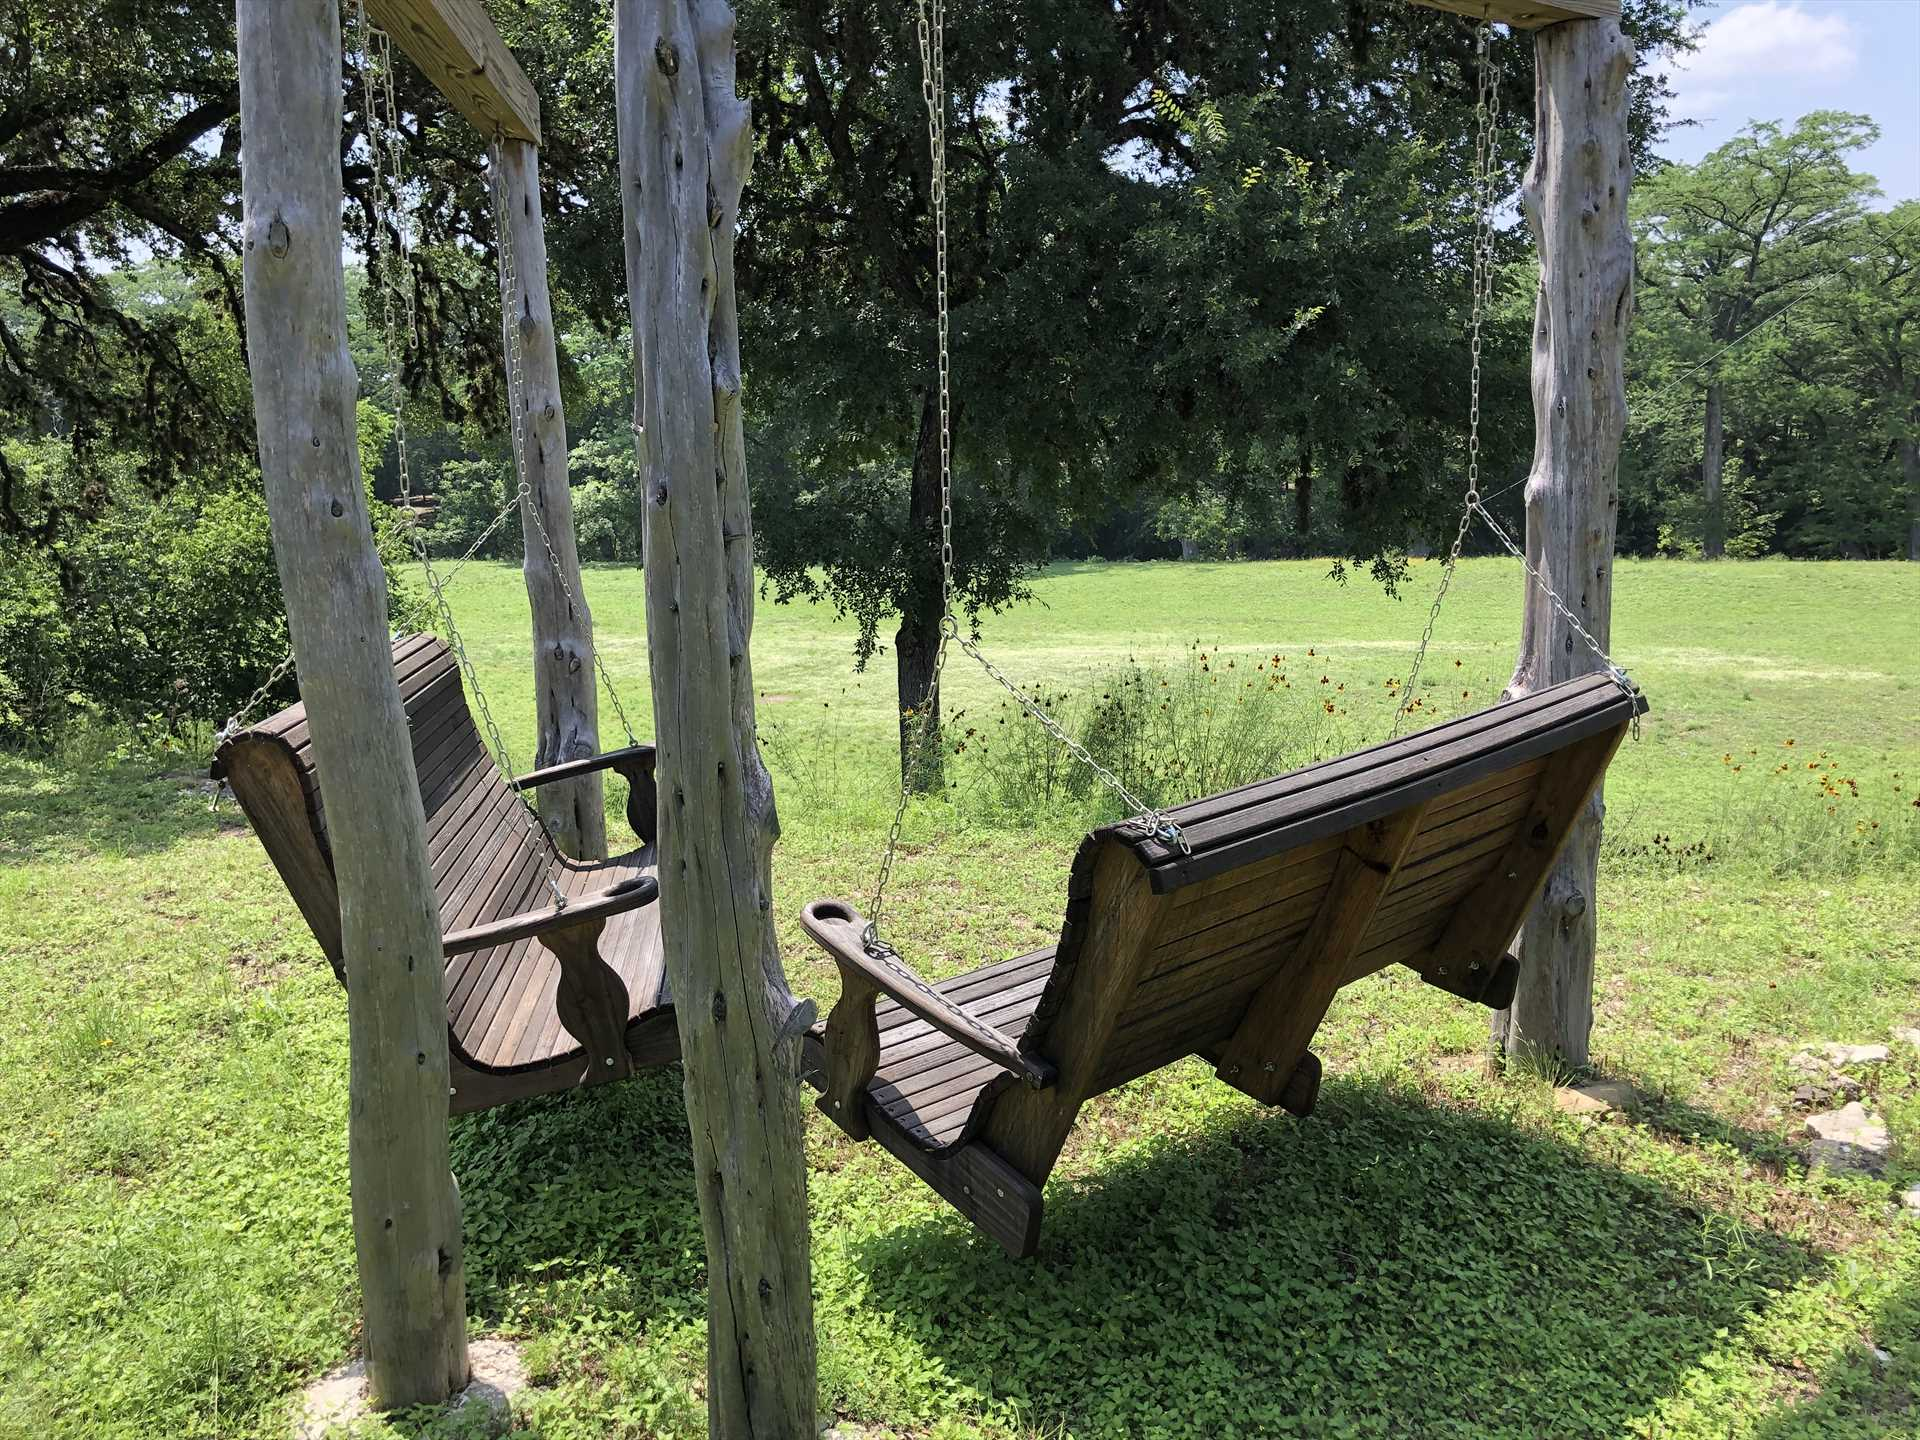 The twin swings at Rocky River are wonderful for snuggling, stargazing, and wildlife watching.